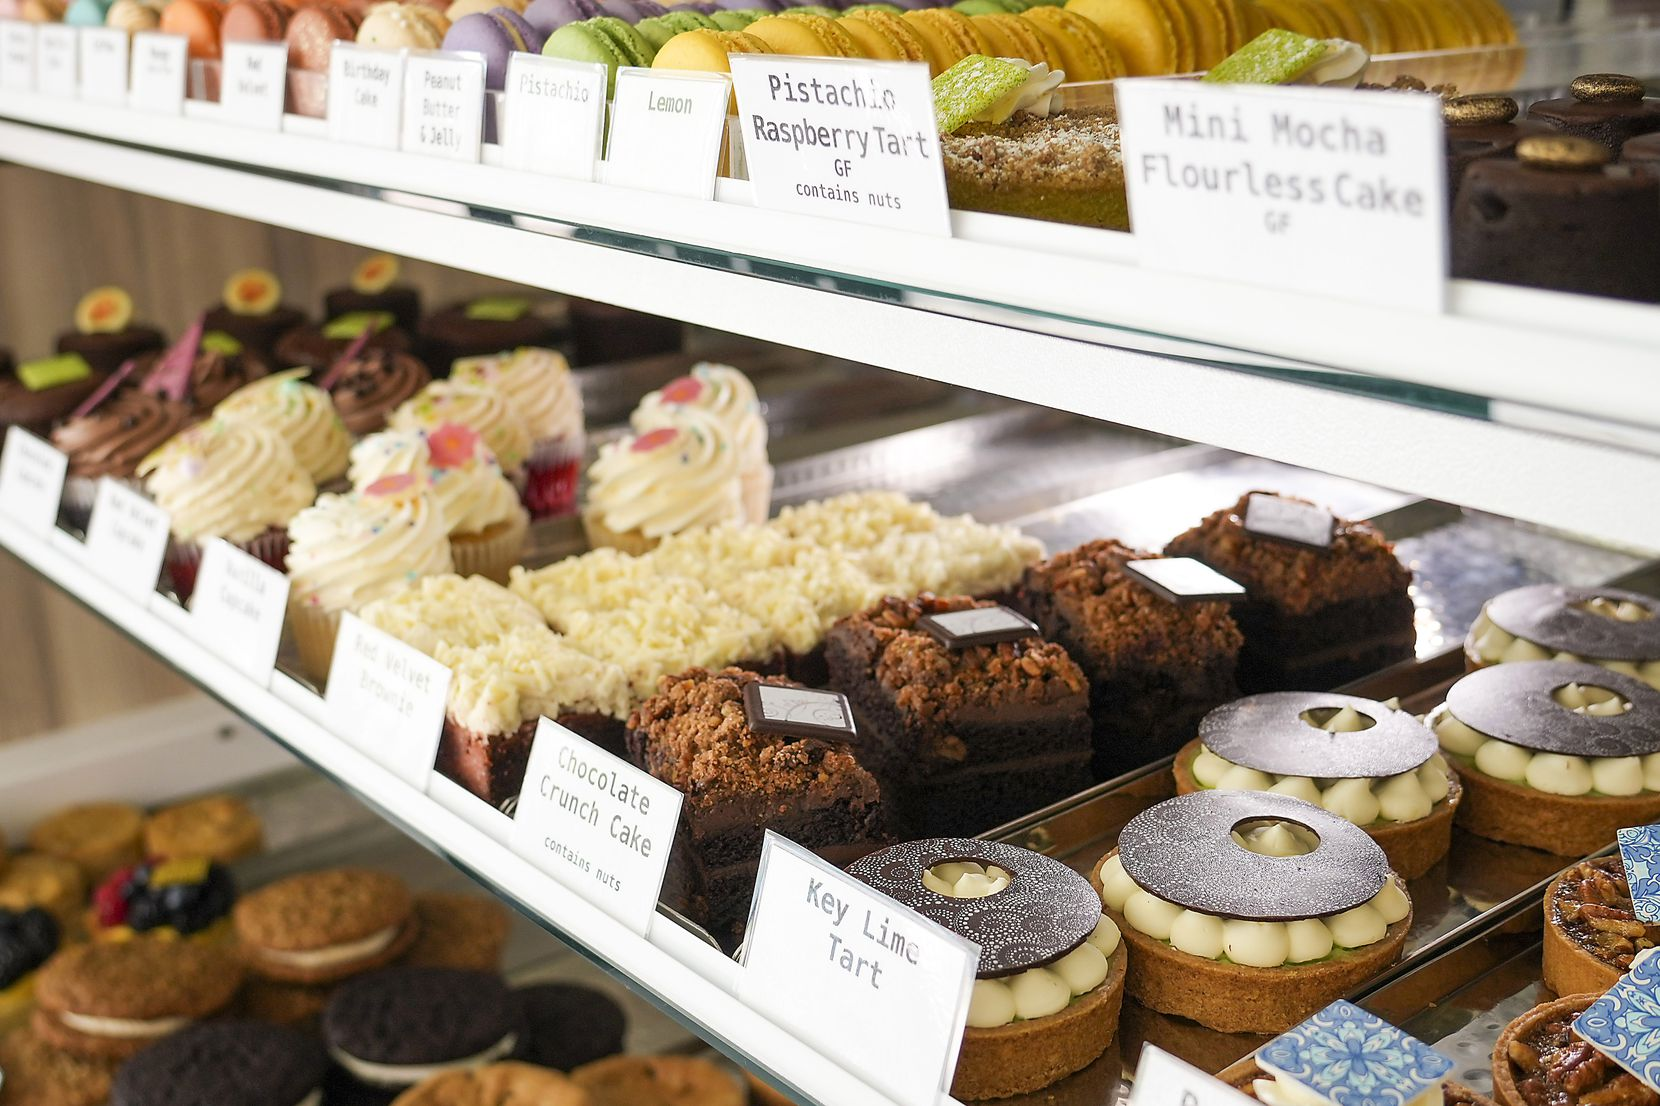 Cakes, cookies, tarts and macrons in a display case at Haute Sweets Patisserie in Hillcrest Village (Smiley N. Pool/The Dallas Morning News)